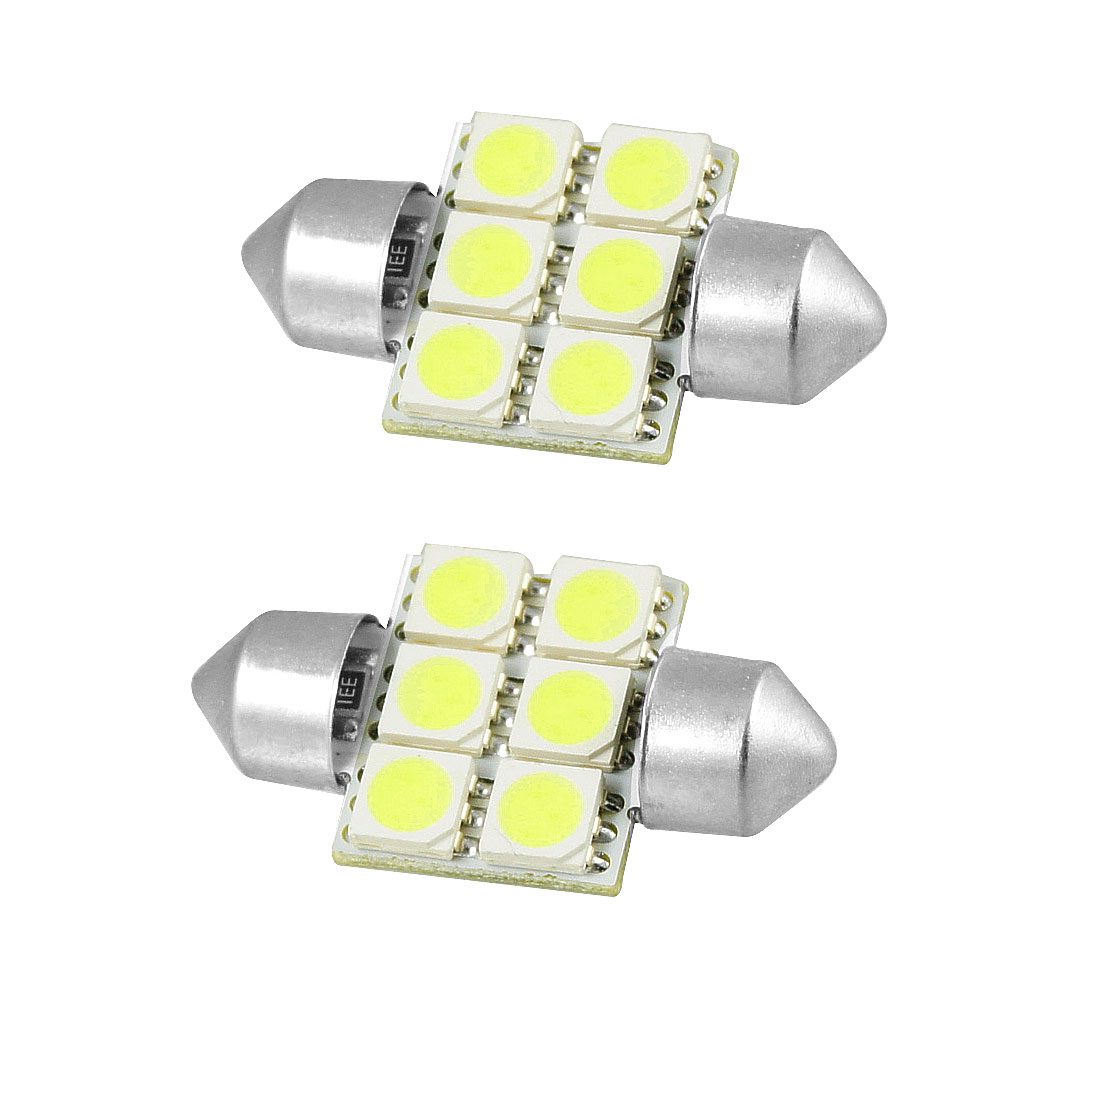 Car Auto Vehicle 34mm White 5050 6 SMD Interior Festoon LED Light 2 Pcs